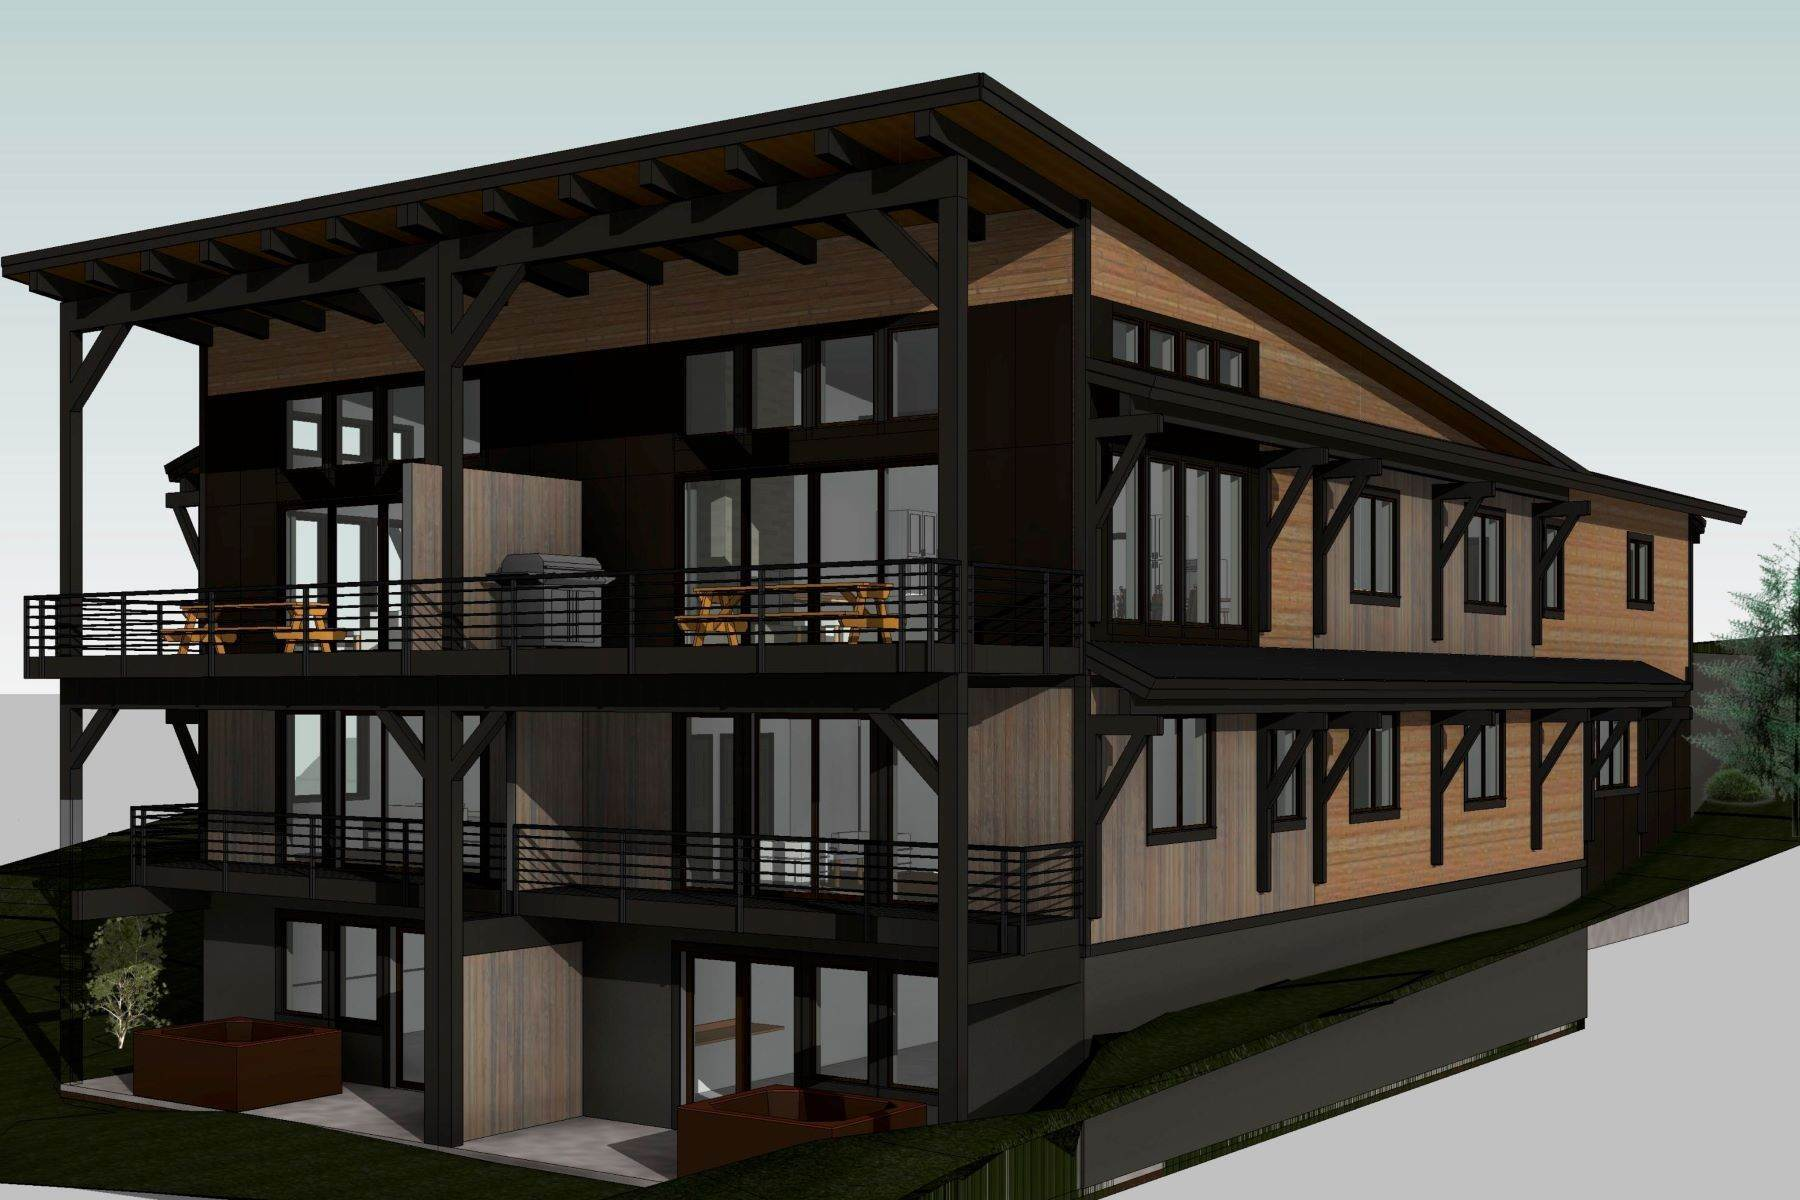 townhouses for Sale at Moose Run Townhome - to be built 263 Moose Run Drive Whitefish, Montana 59937 United States